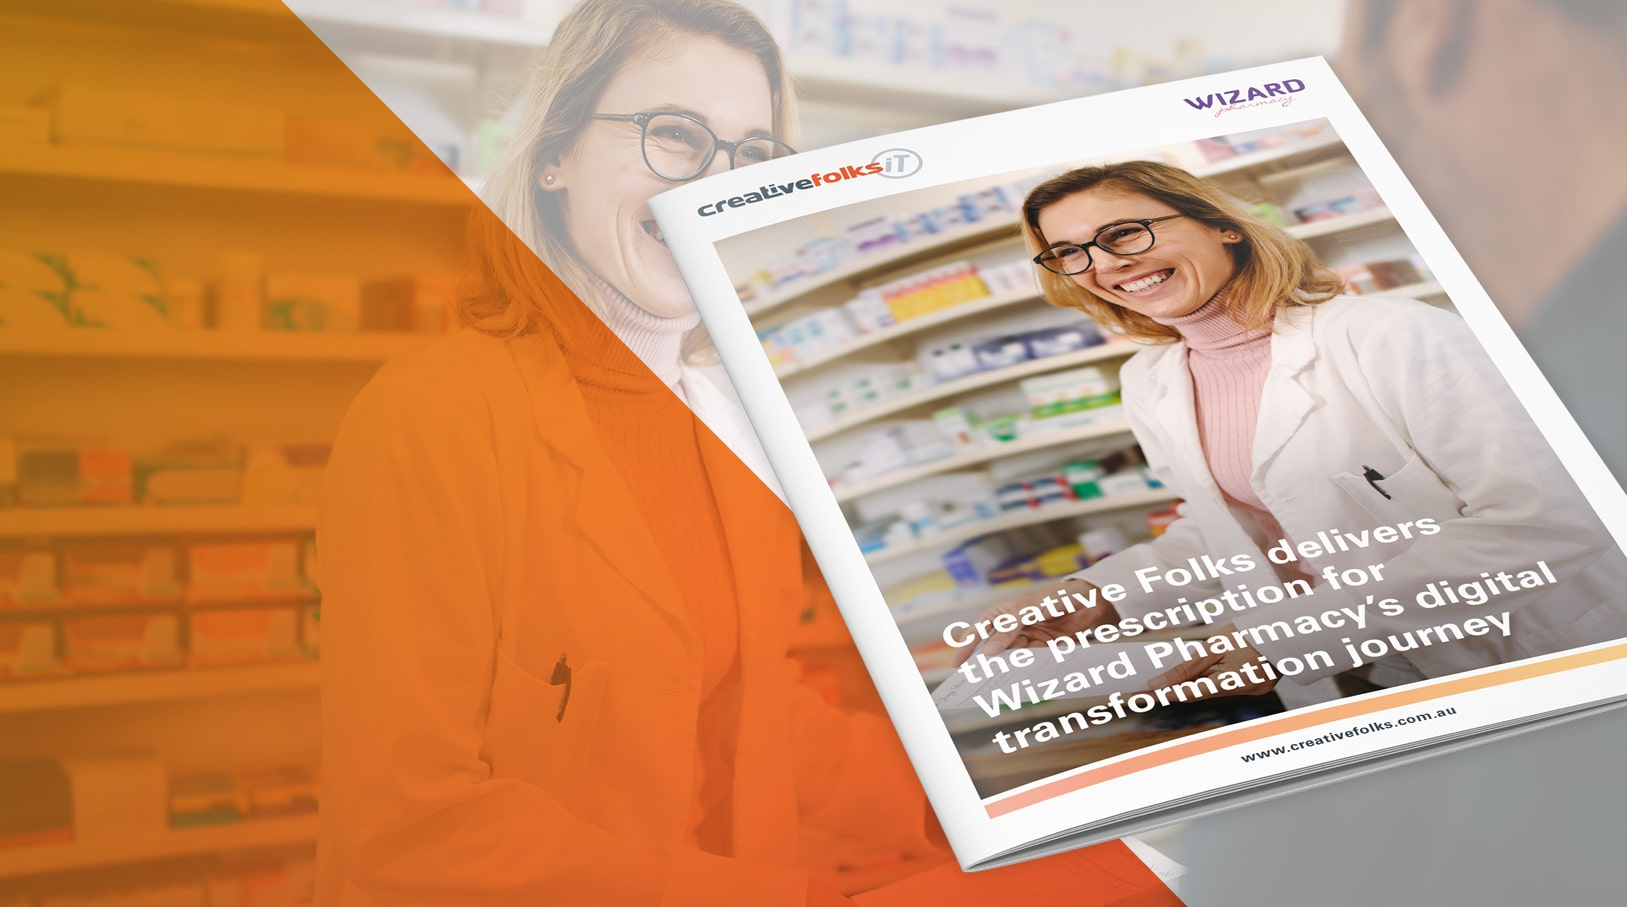 Creative Folks and Wizard Pharmacy Case Study